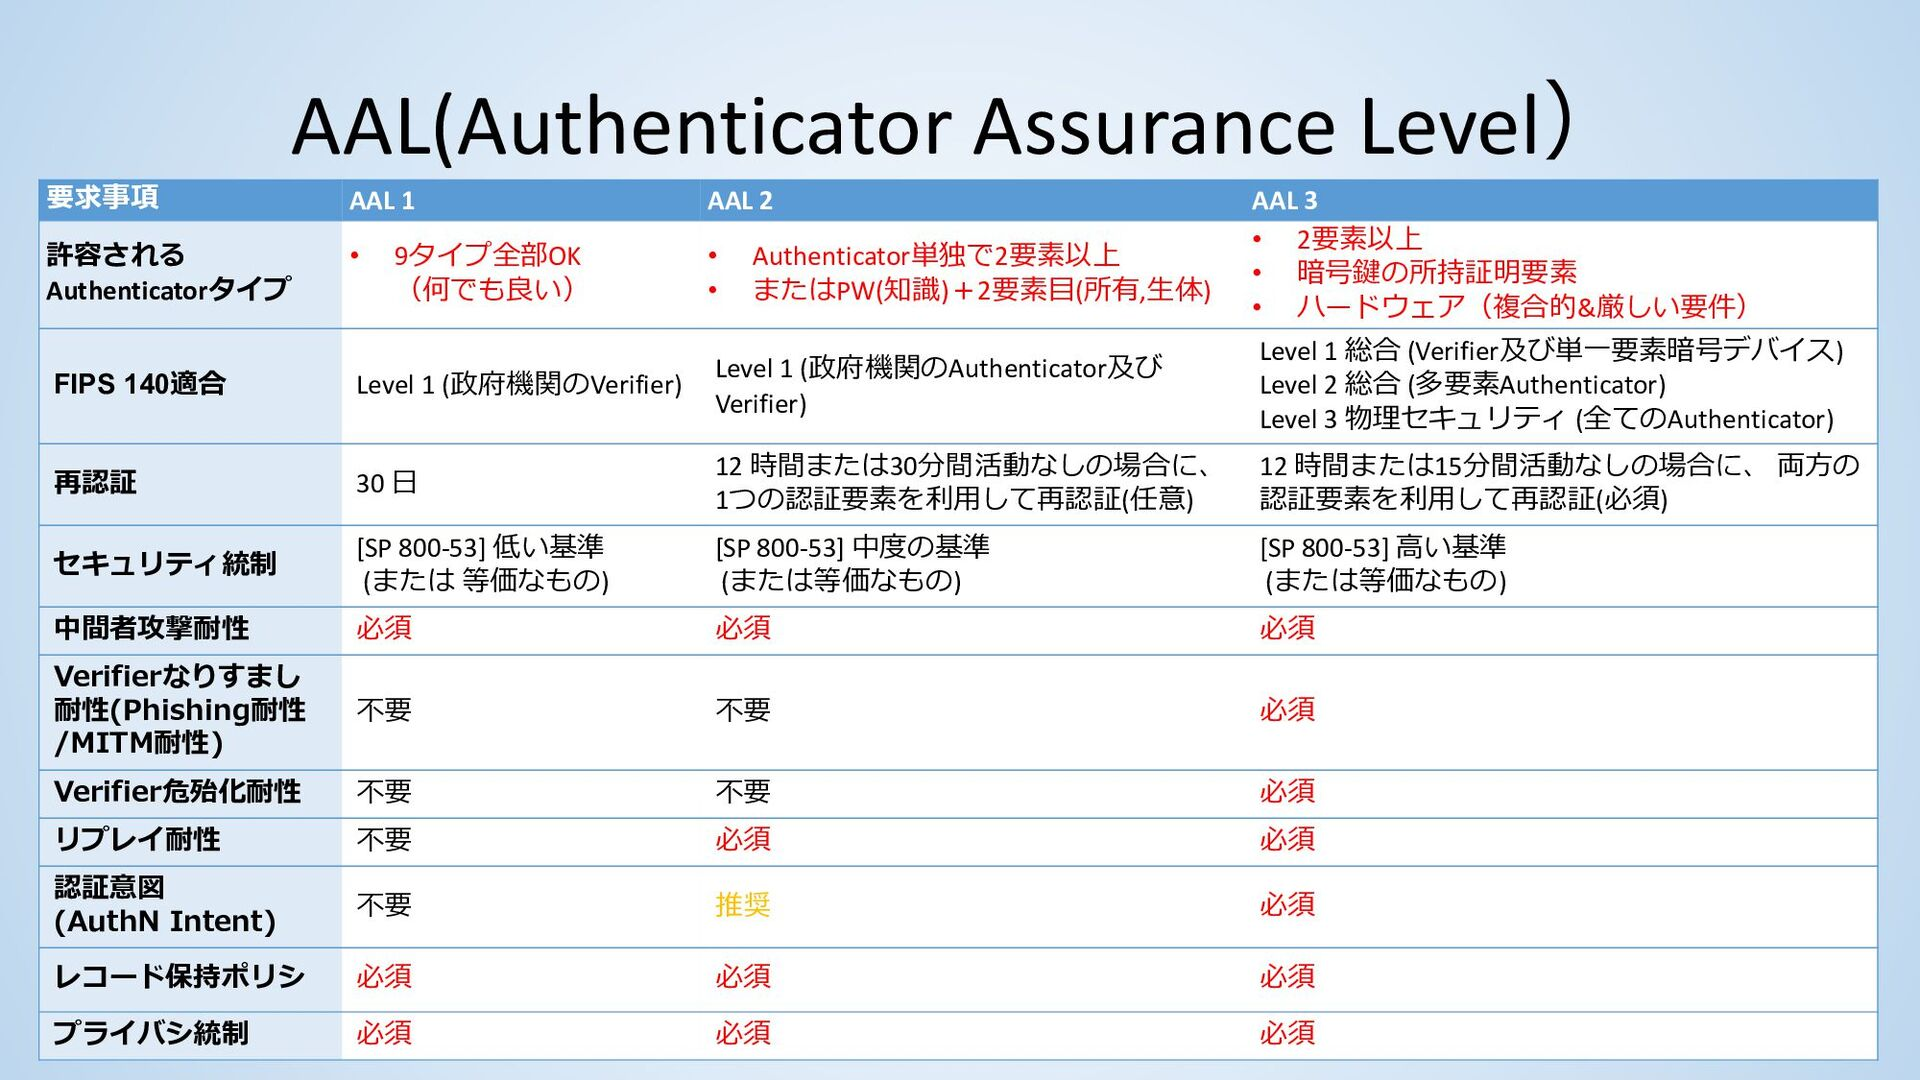 Authenticatorのタイプ # Authenticatorのタイプ 内容 8 MF C...